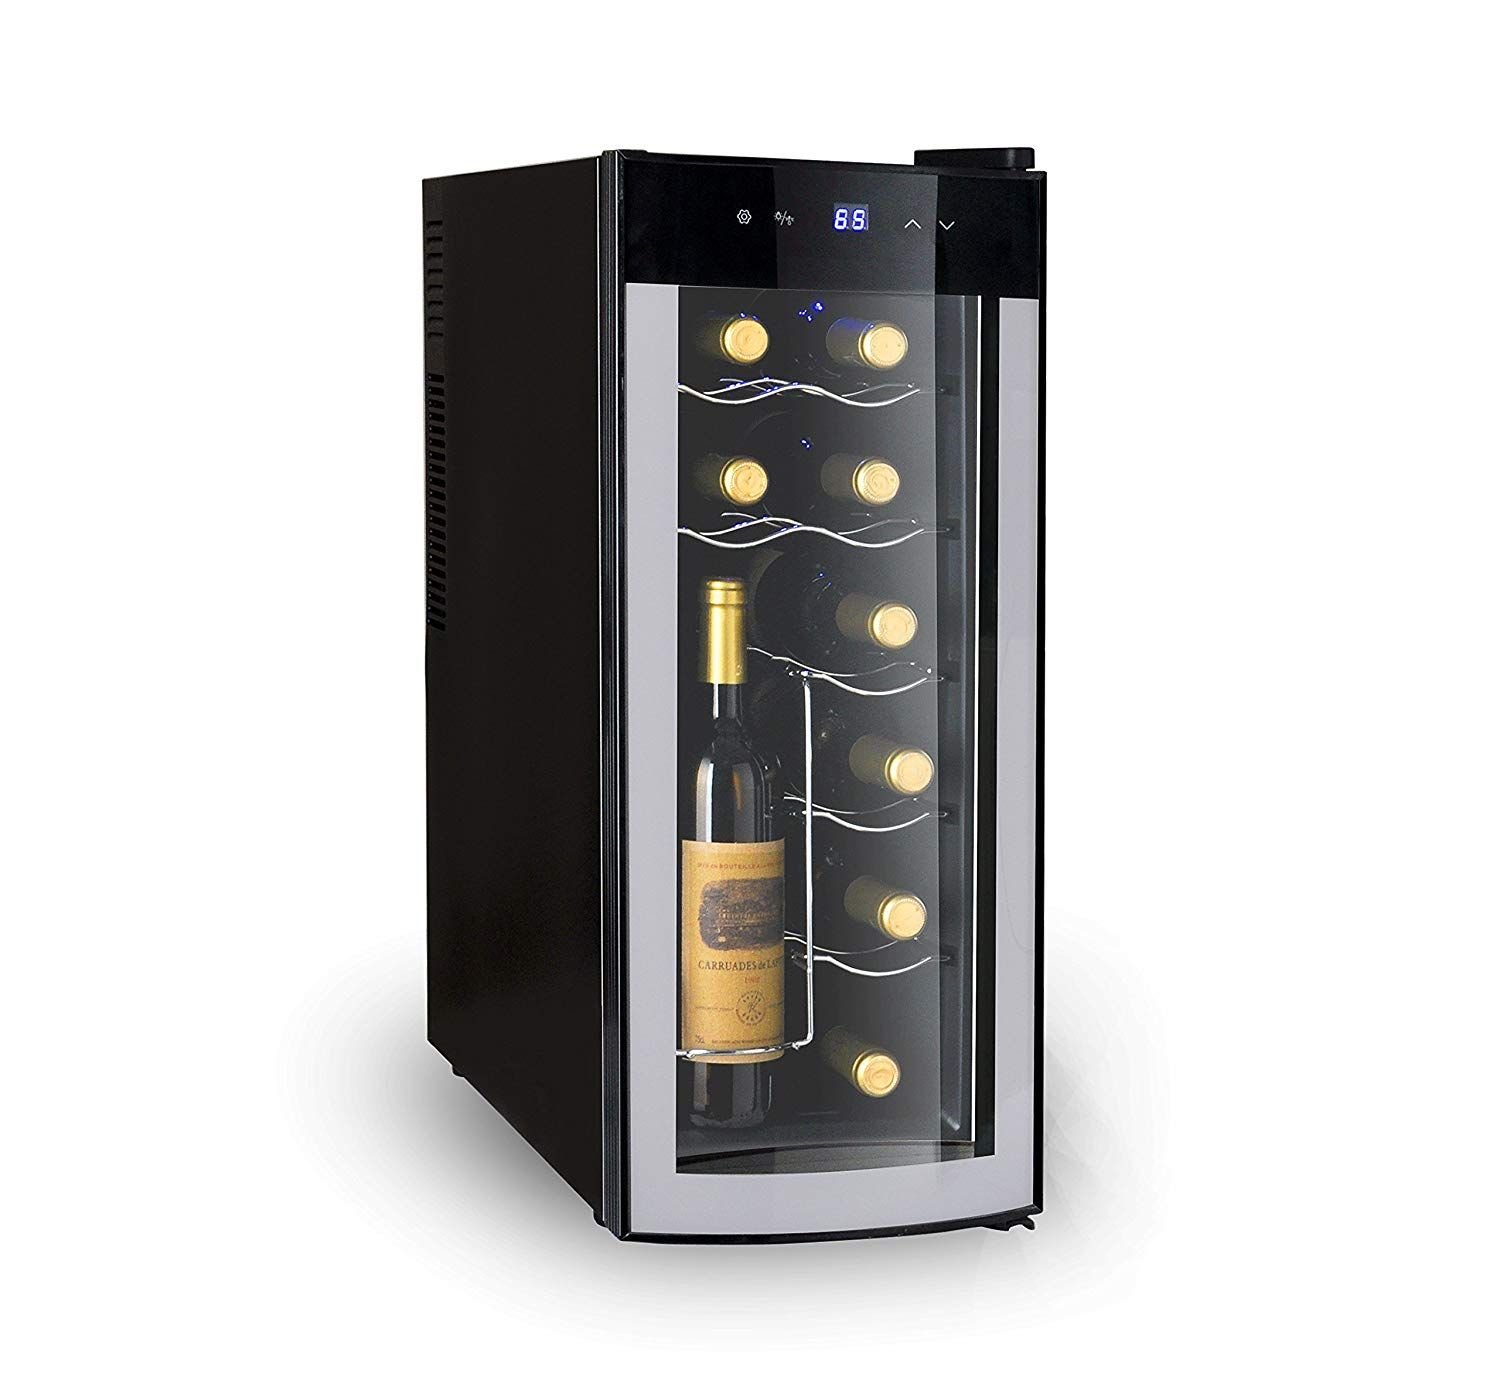 8 Best 12 Bottle Wine Cooler Plus 1 To Avoid Best Wine Coolers Wine Chiller Italian Wine